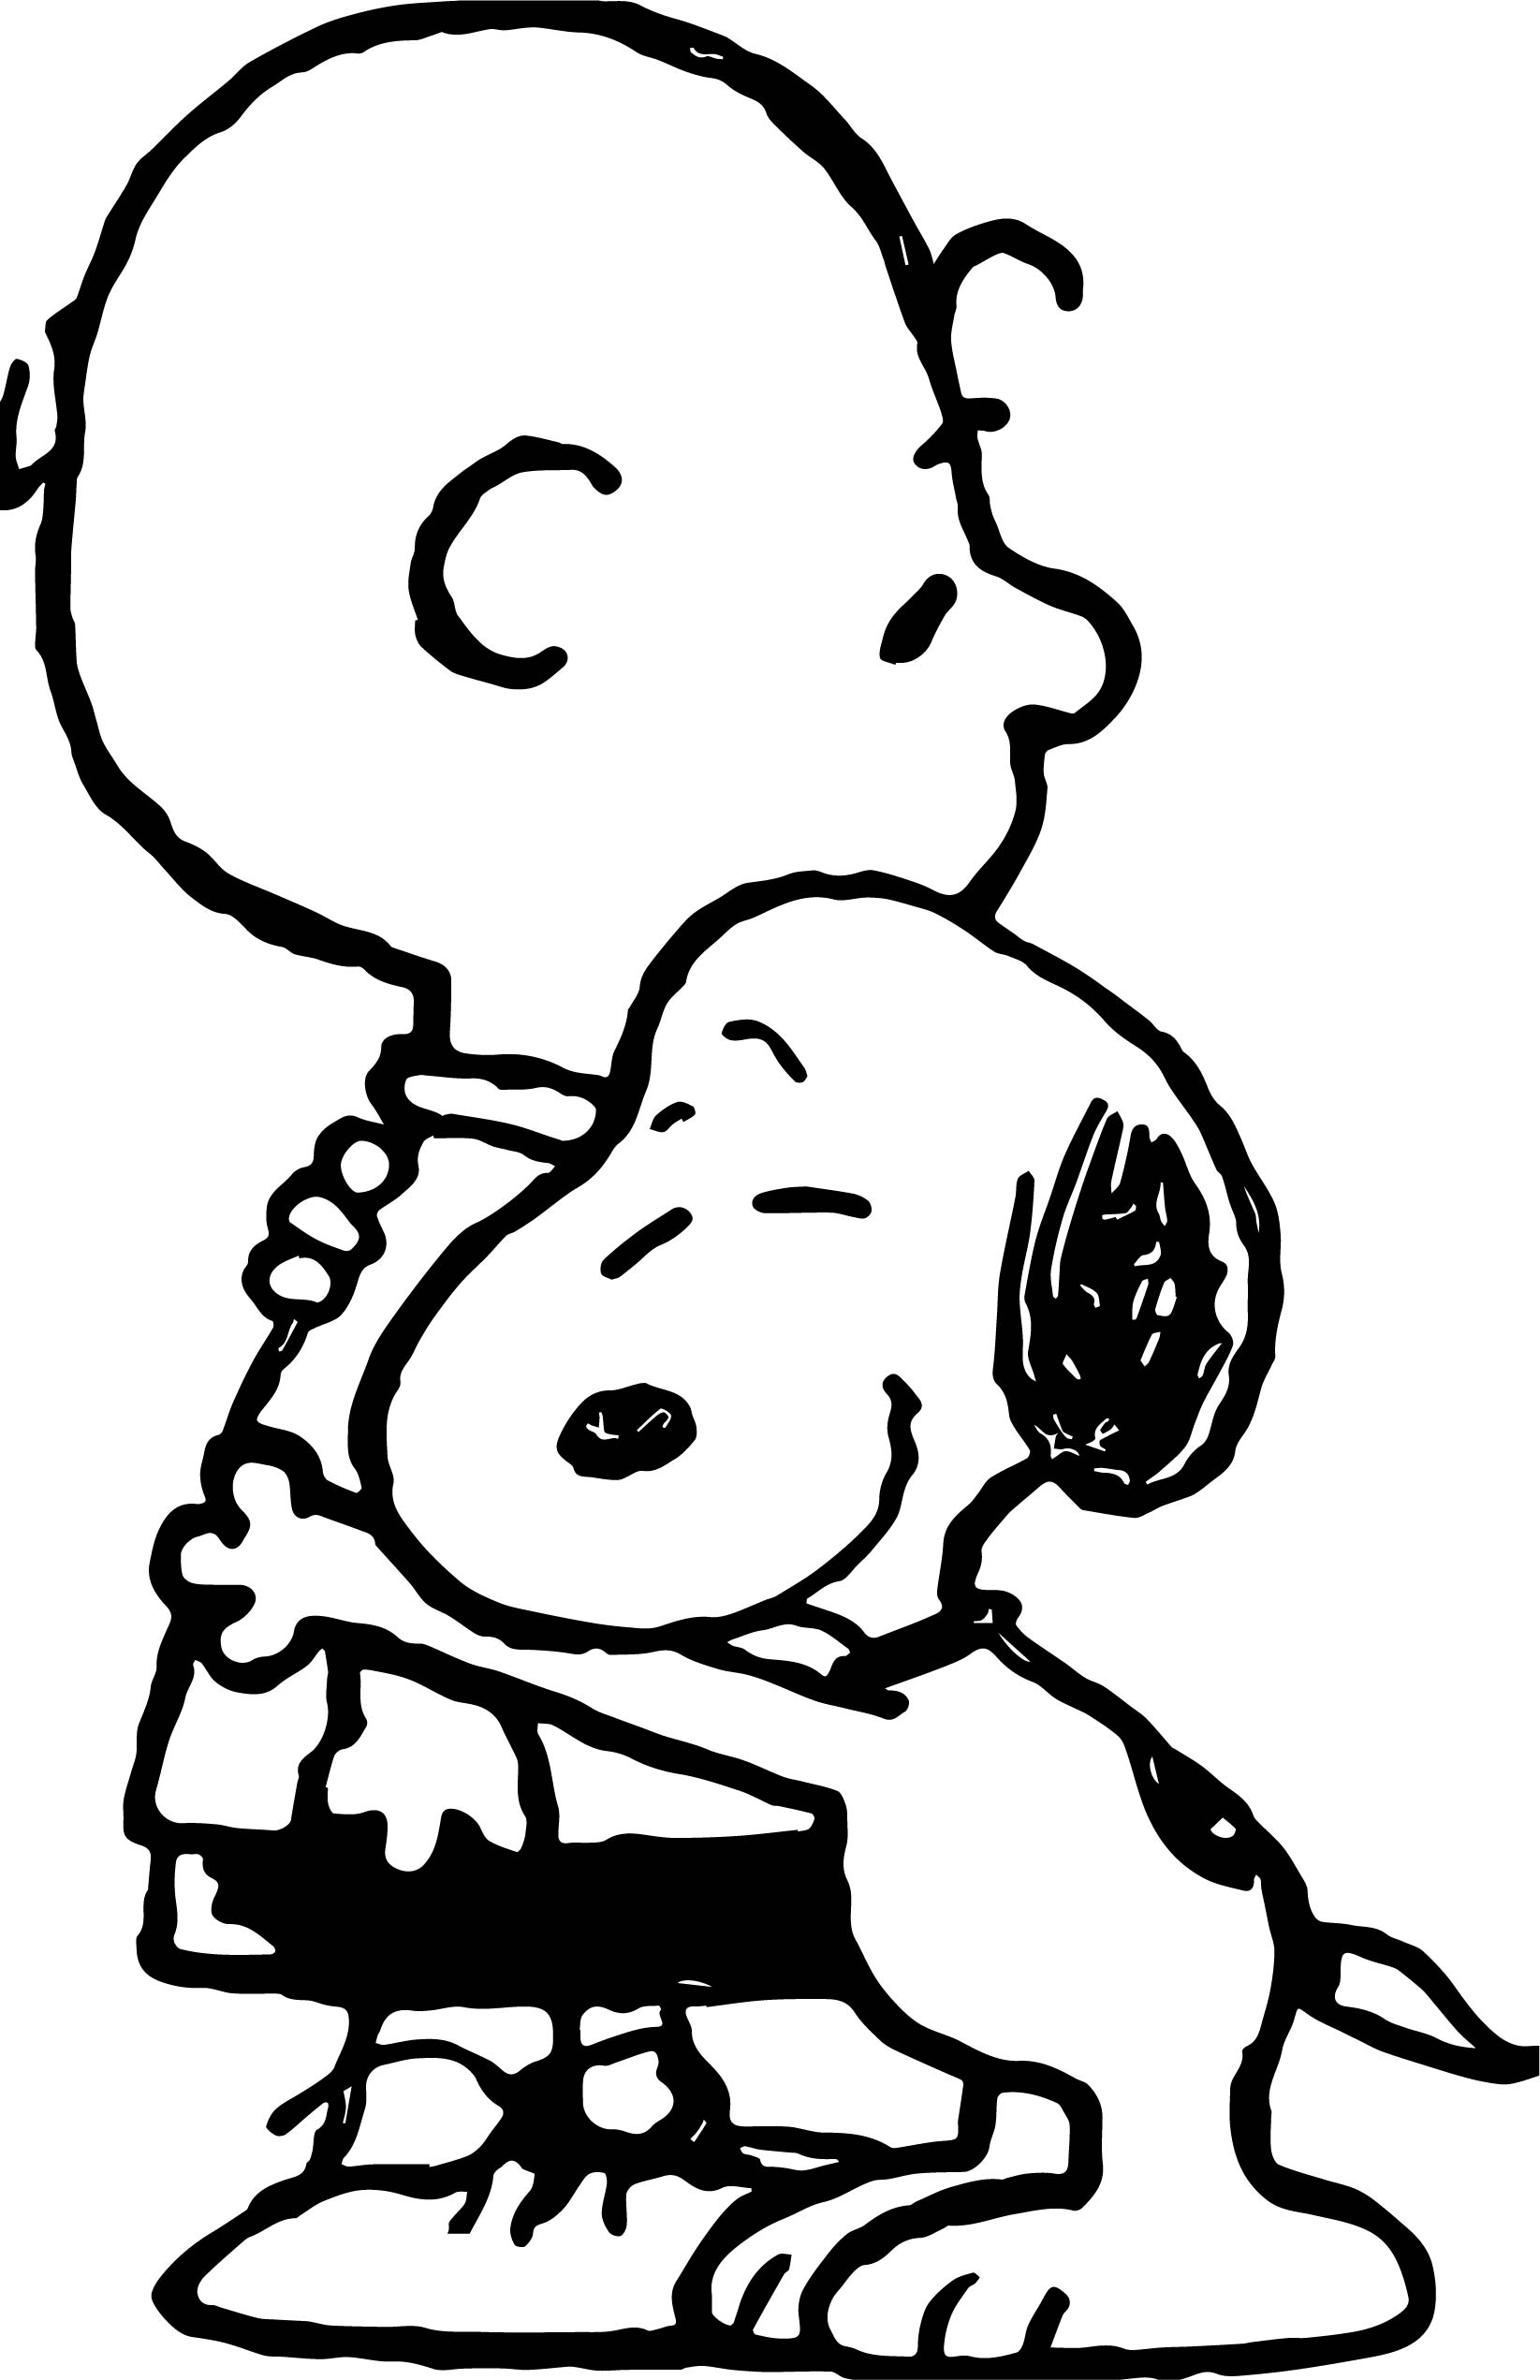 snoopy coloring sheets snoopy hug coloring page wecoloringpagecom sheets coloring snoopy